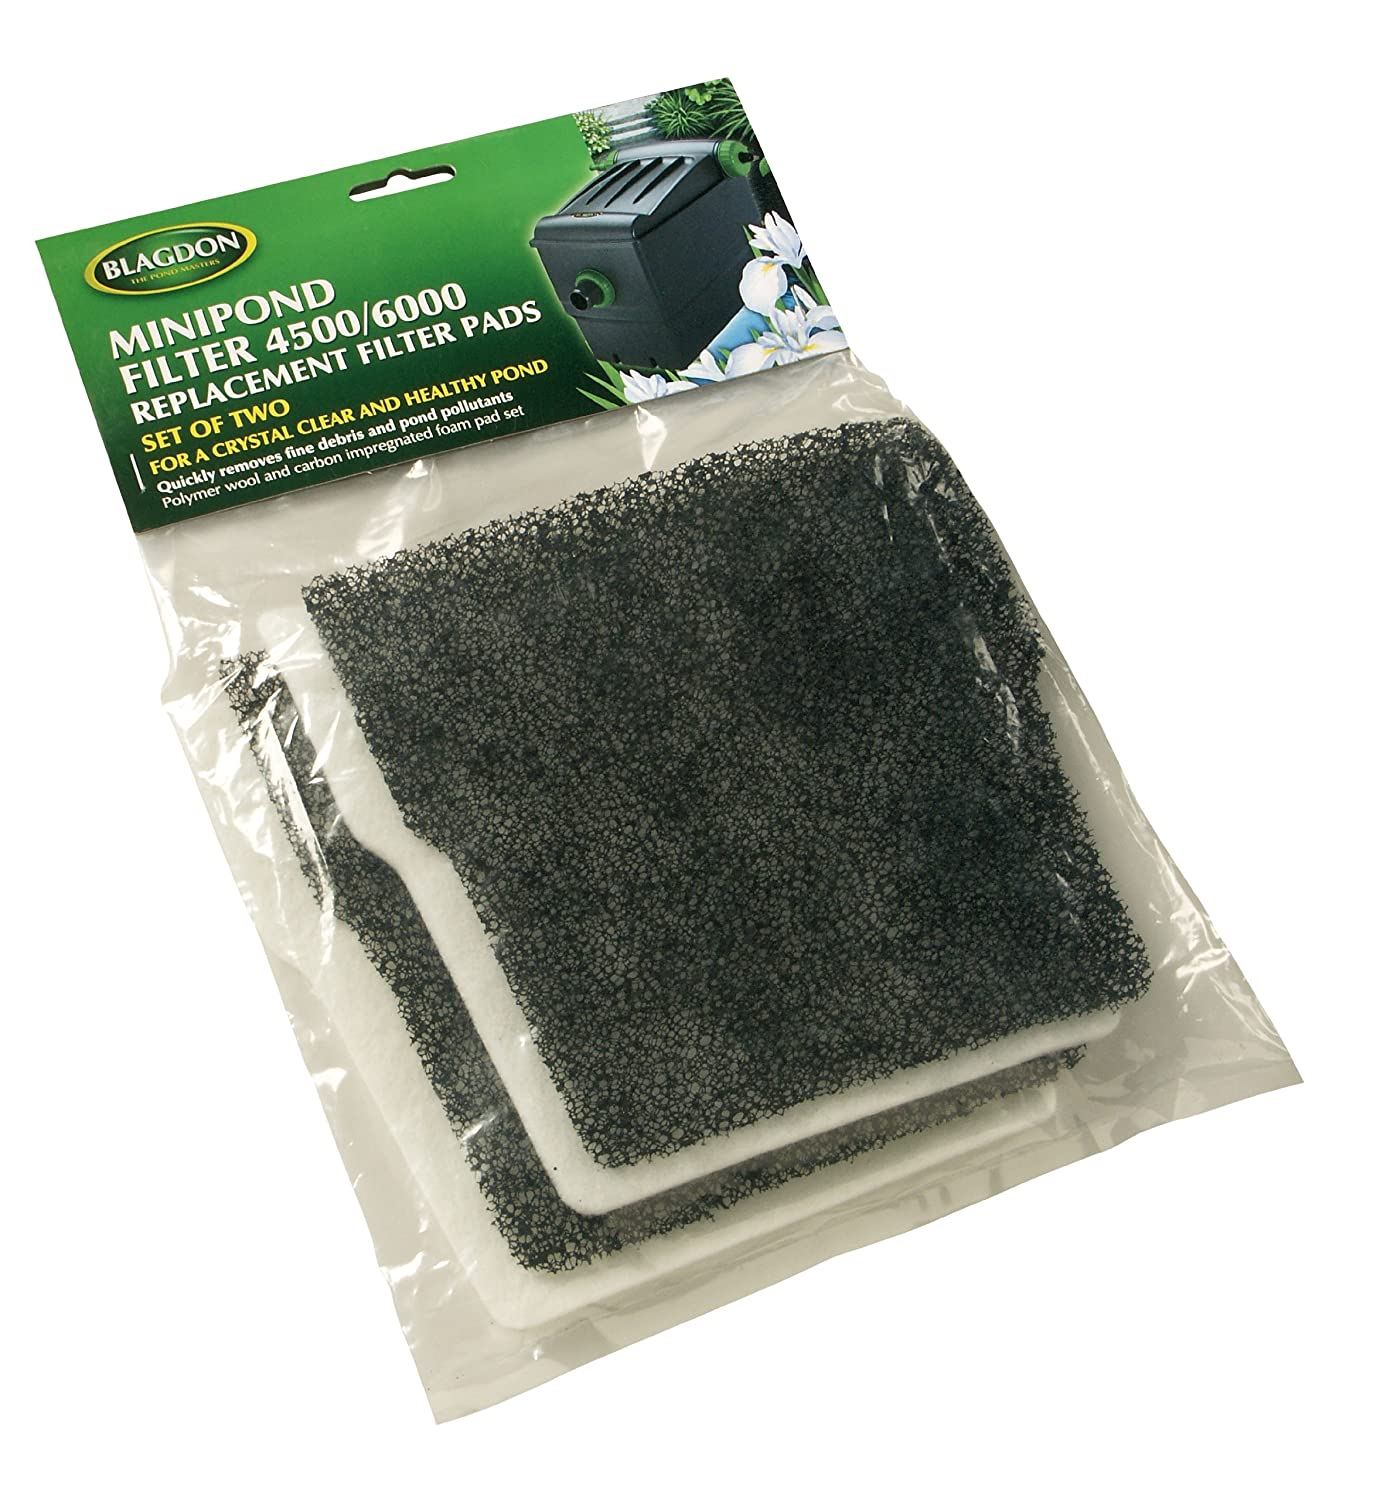 Blagdon Mini-Pond Carbon and Wool Replacement (Pack of 2) Interpet Ltd